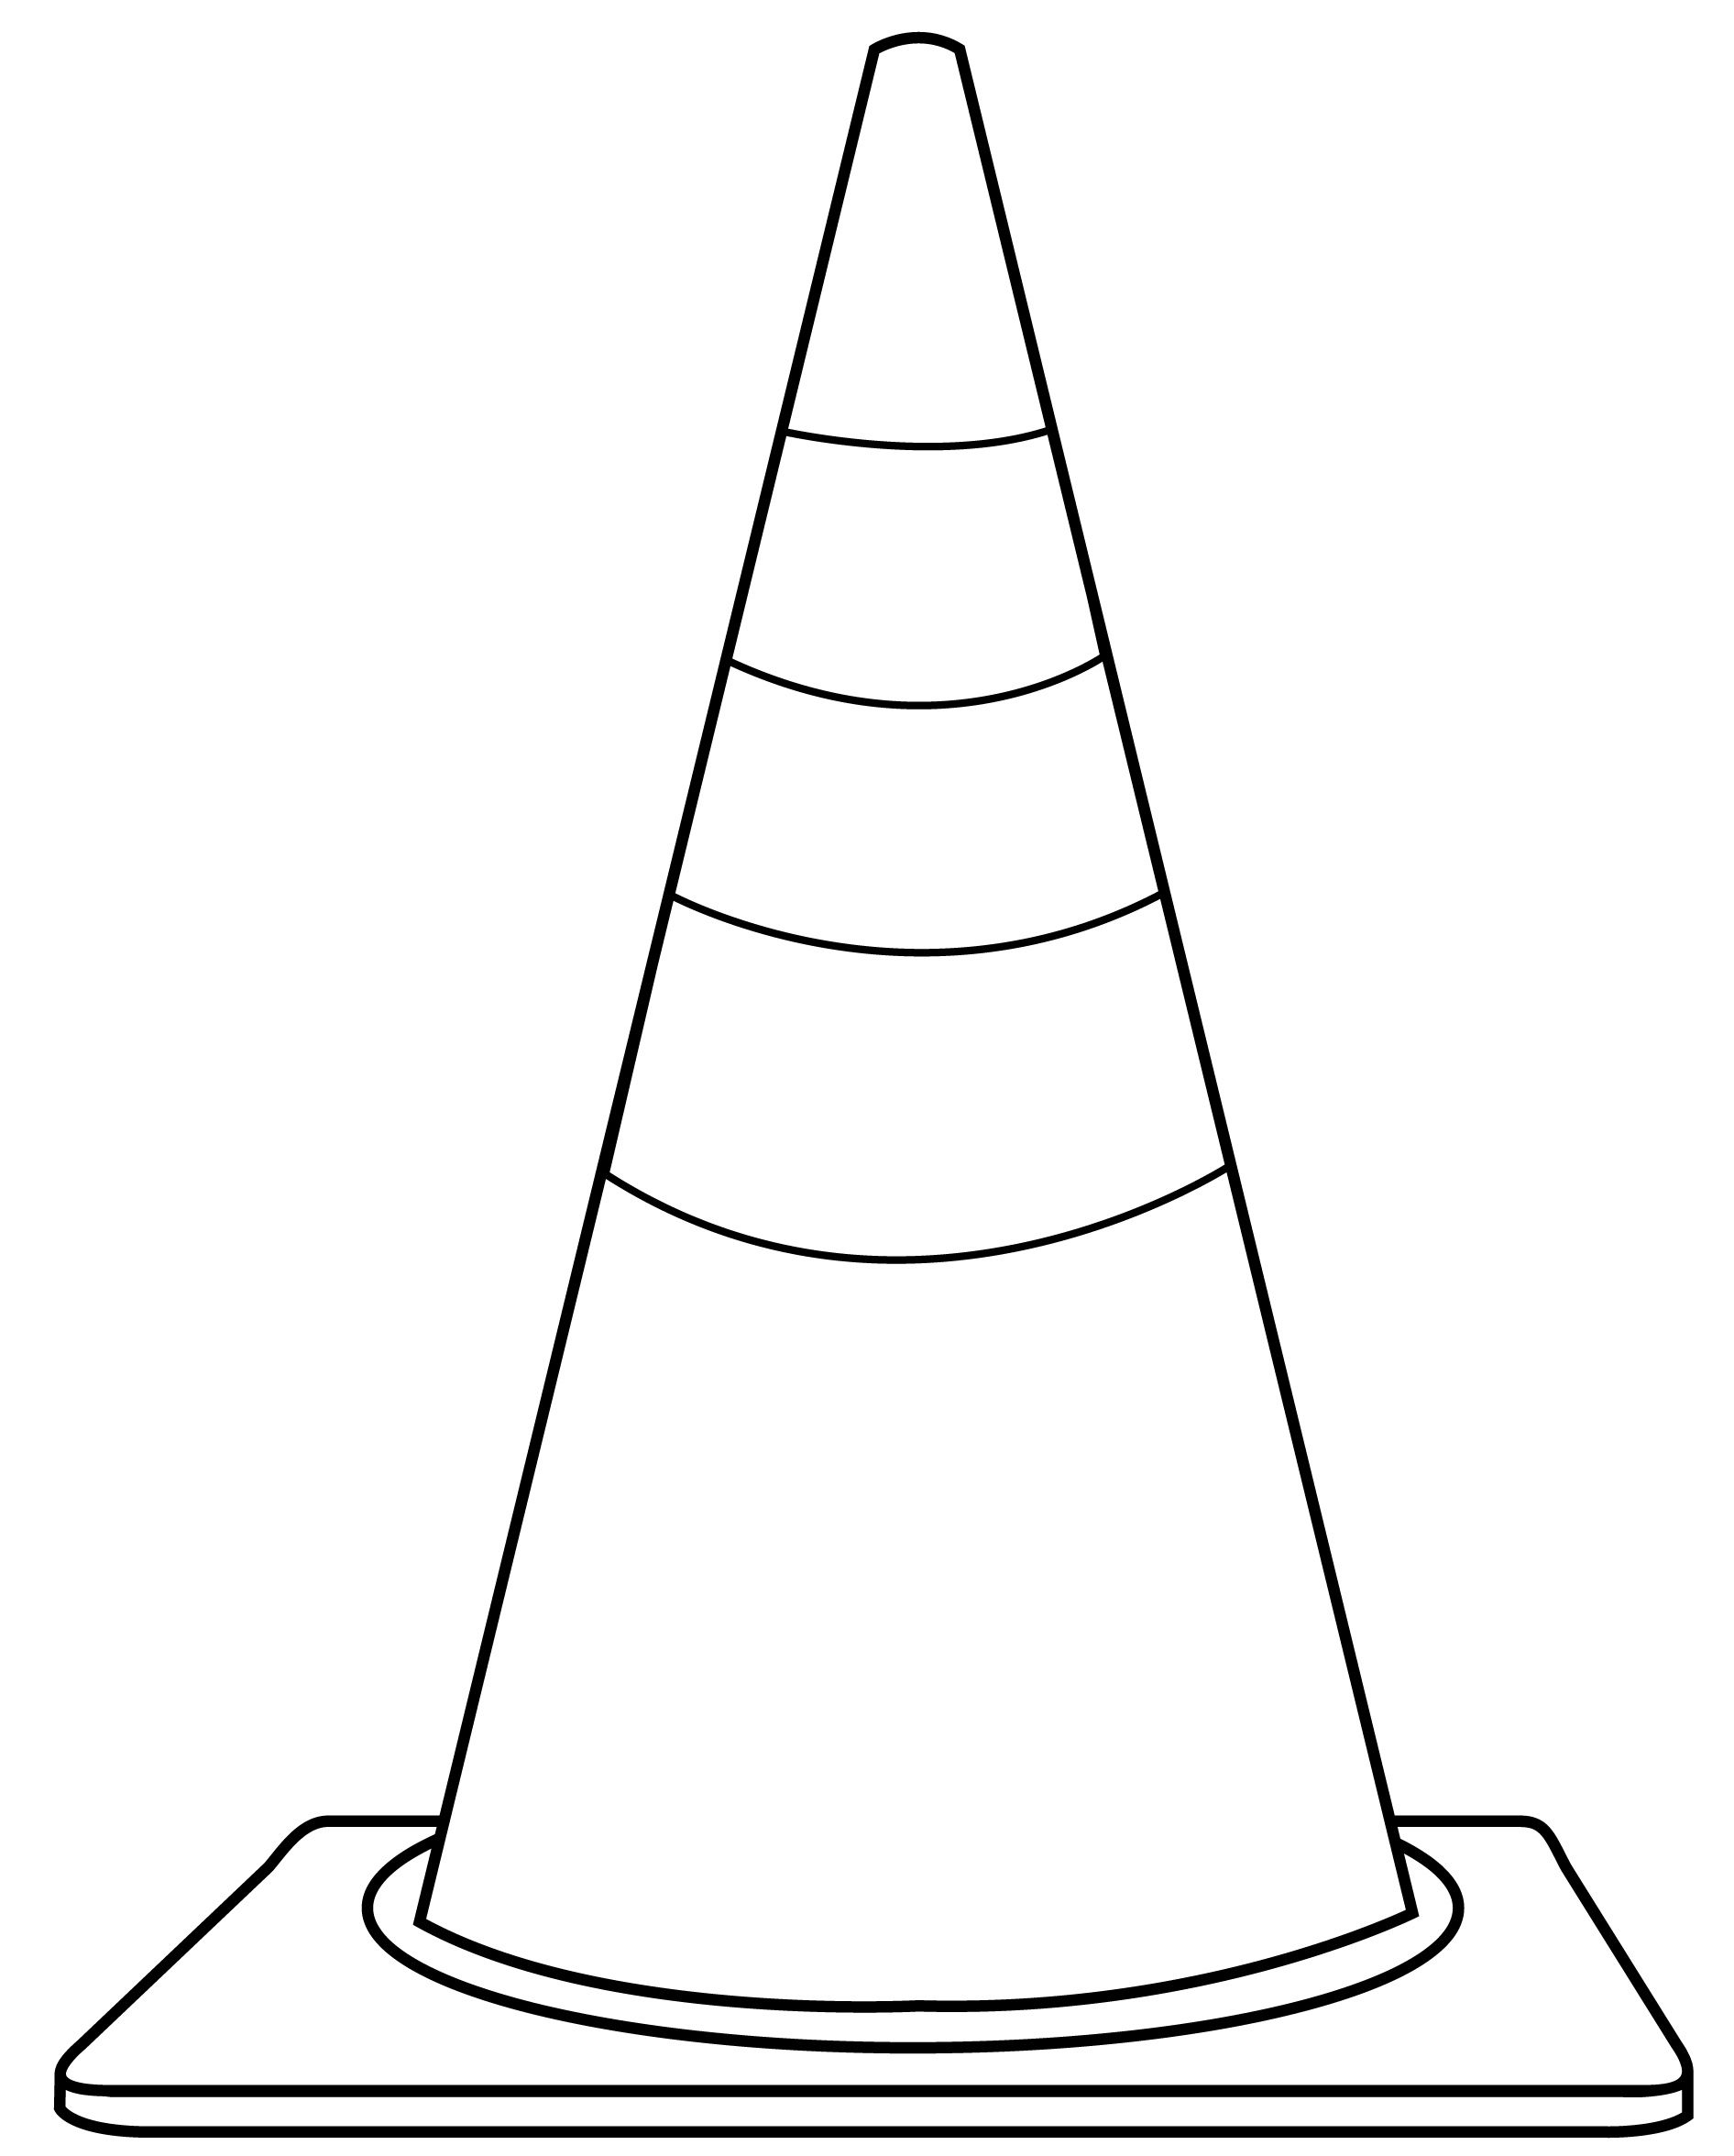 Free shape cliparts download. Flat trianle cone black and white clipart